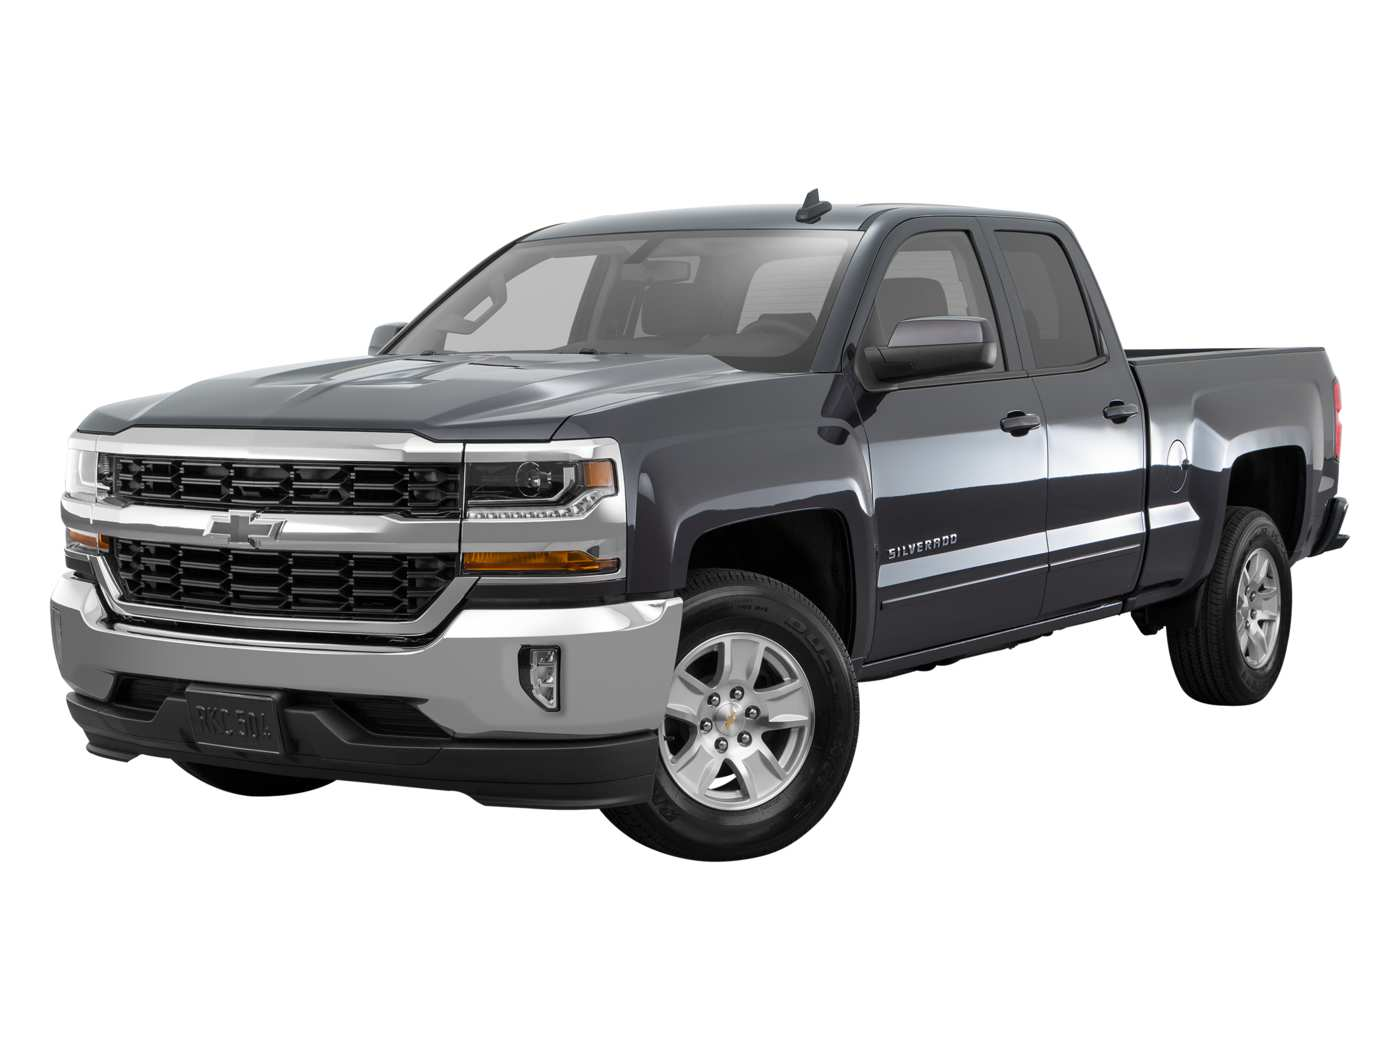 2019 Chevrolet Silverado 1500 LD LT with 1LT Double Cab Standard Box 4WD